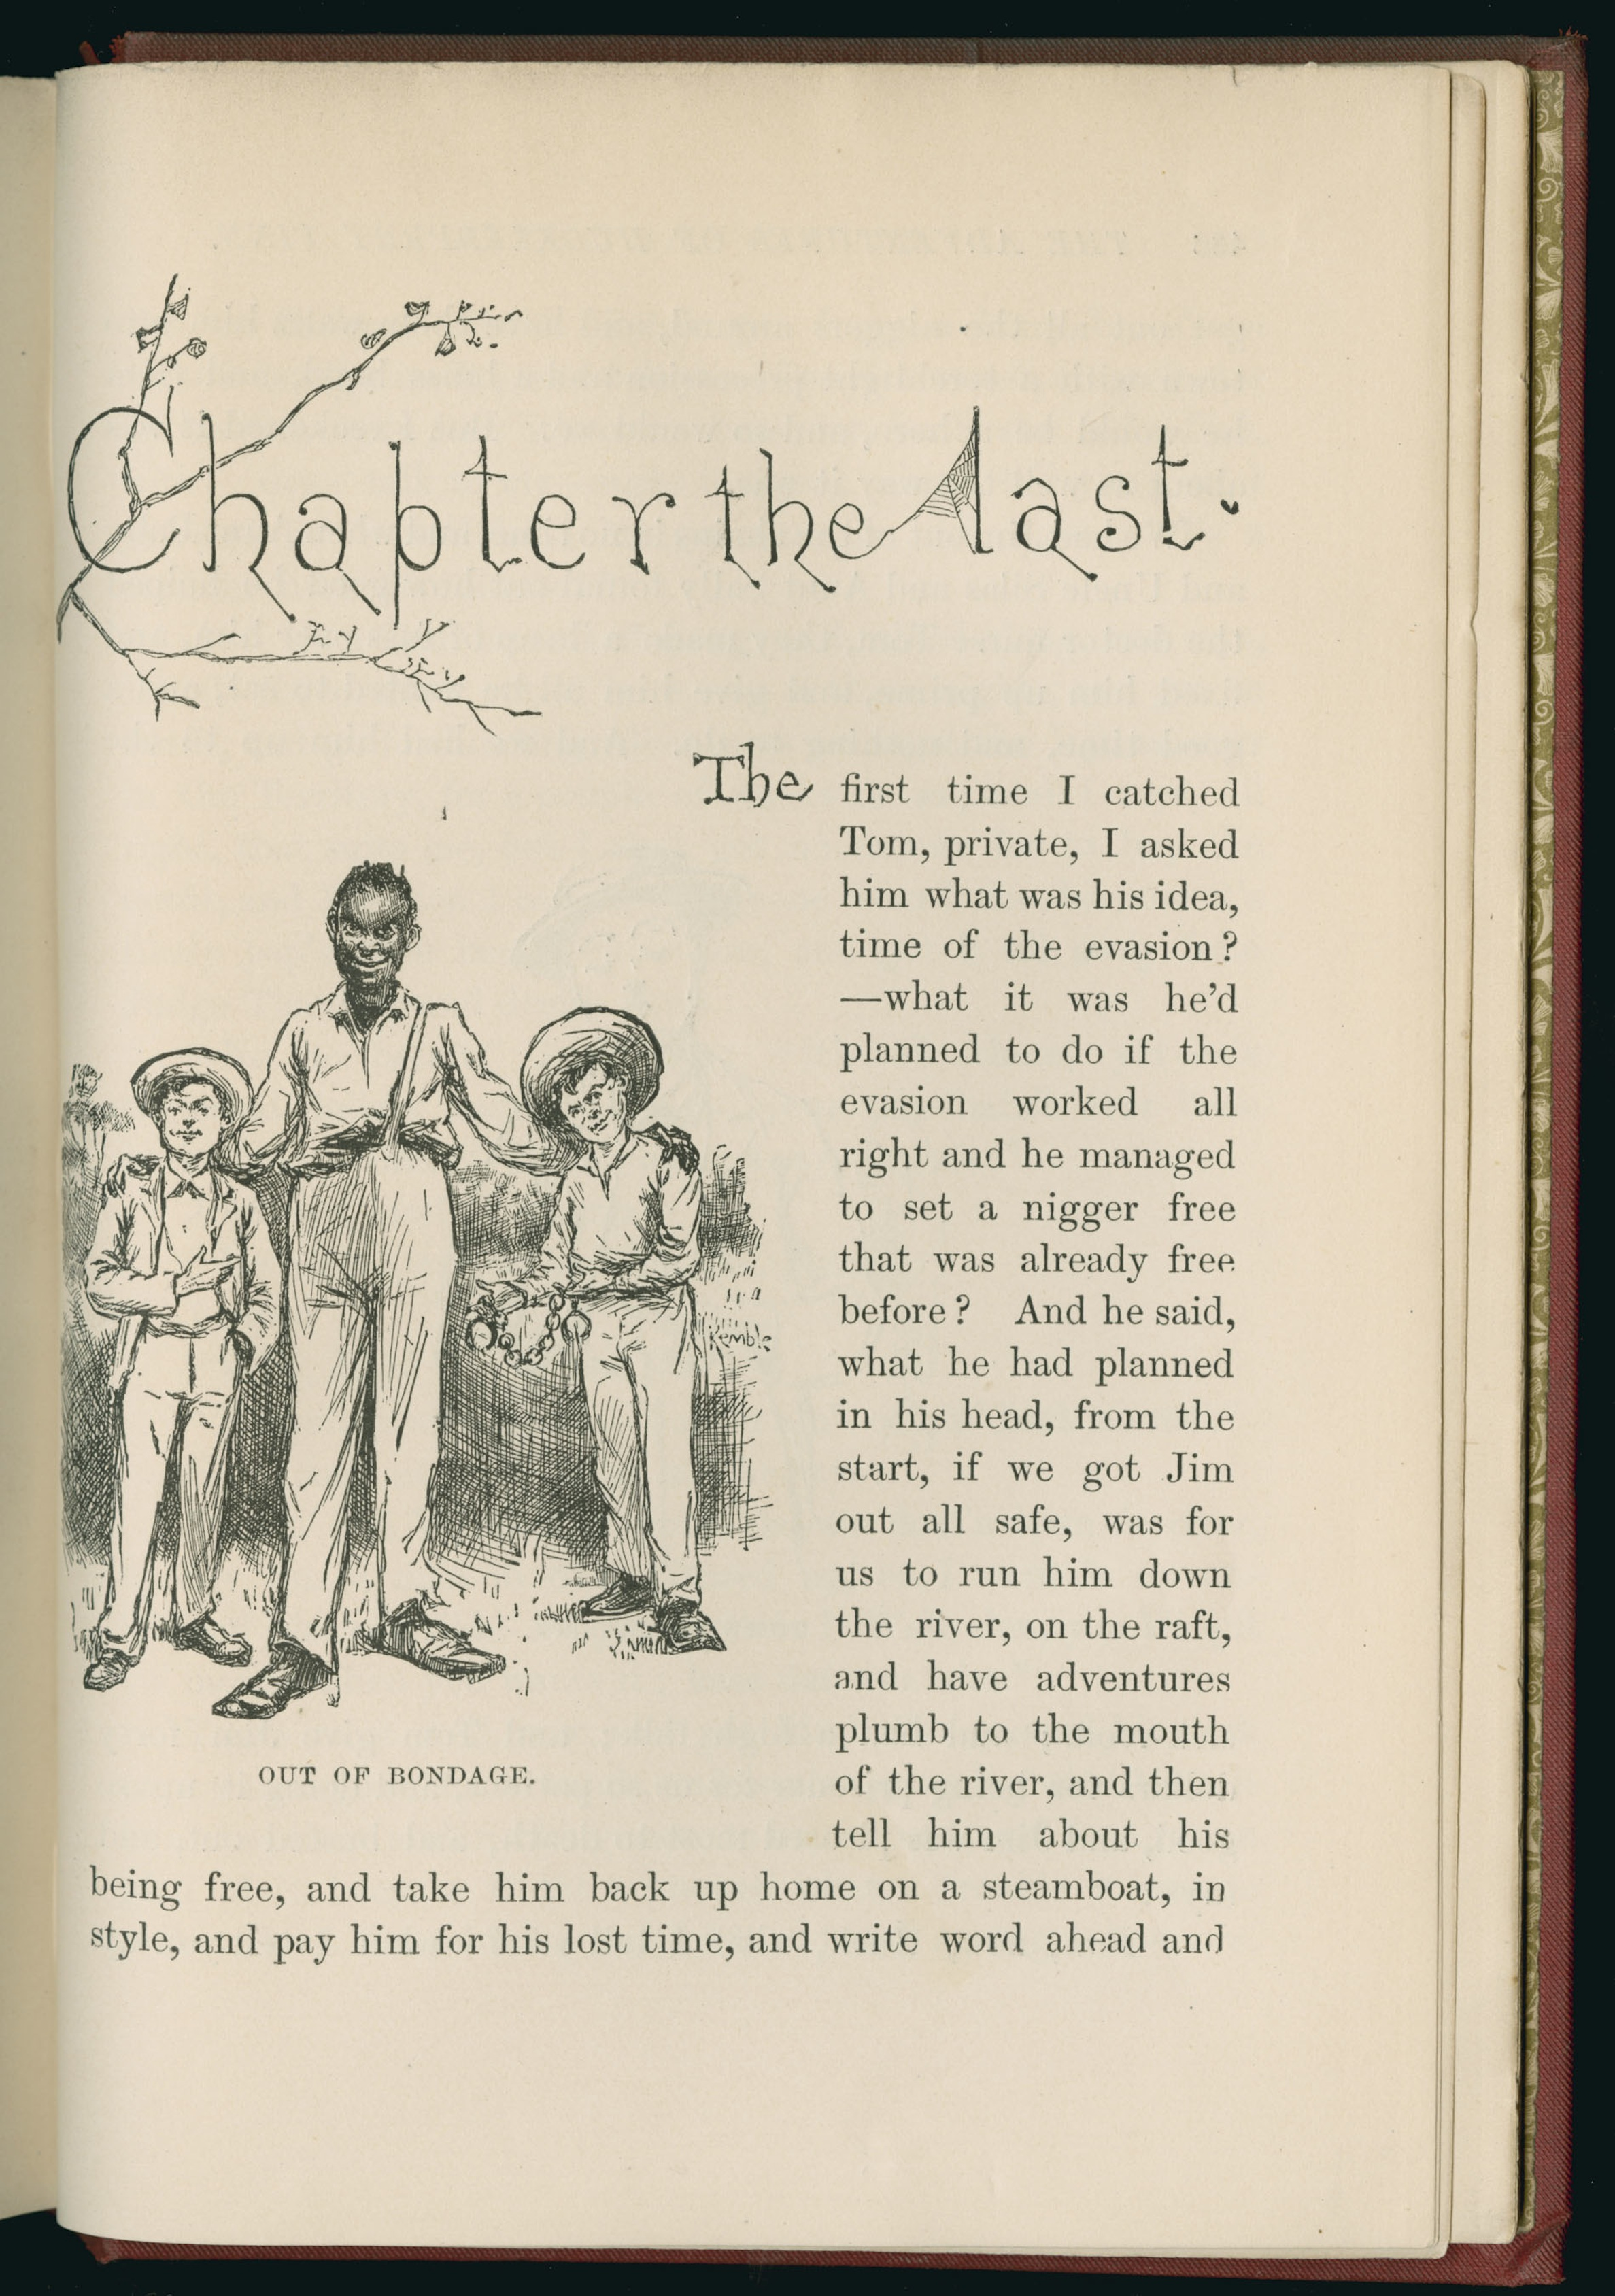 huck finn not racist Racial and religious hypocrisy in adventures of huckleberry finn  man in adventures of huckleberry finn he is an abusive, racist, drunk old man devouted of most virtues at the end of chapter 5, after having been arrested for drunk, yet again, and  huckleberry finn, p239) when boggs rides into the small town and starts hurling insults at.